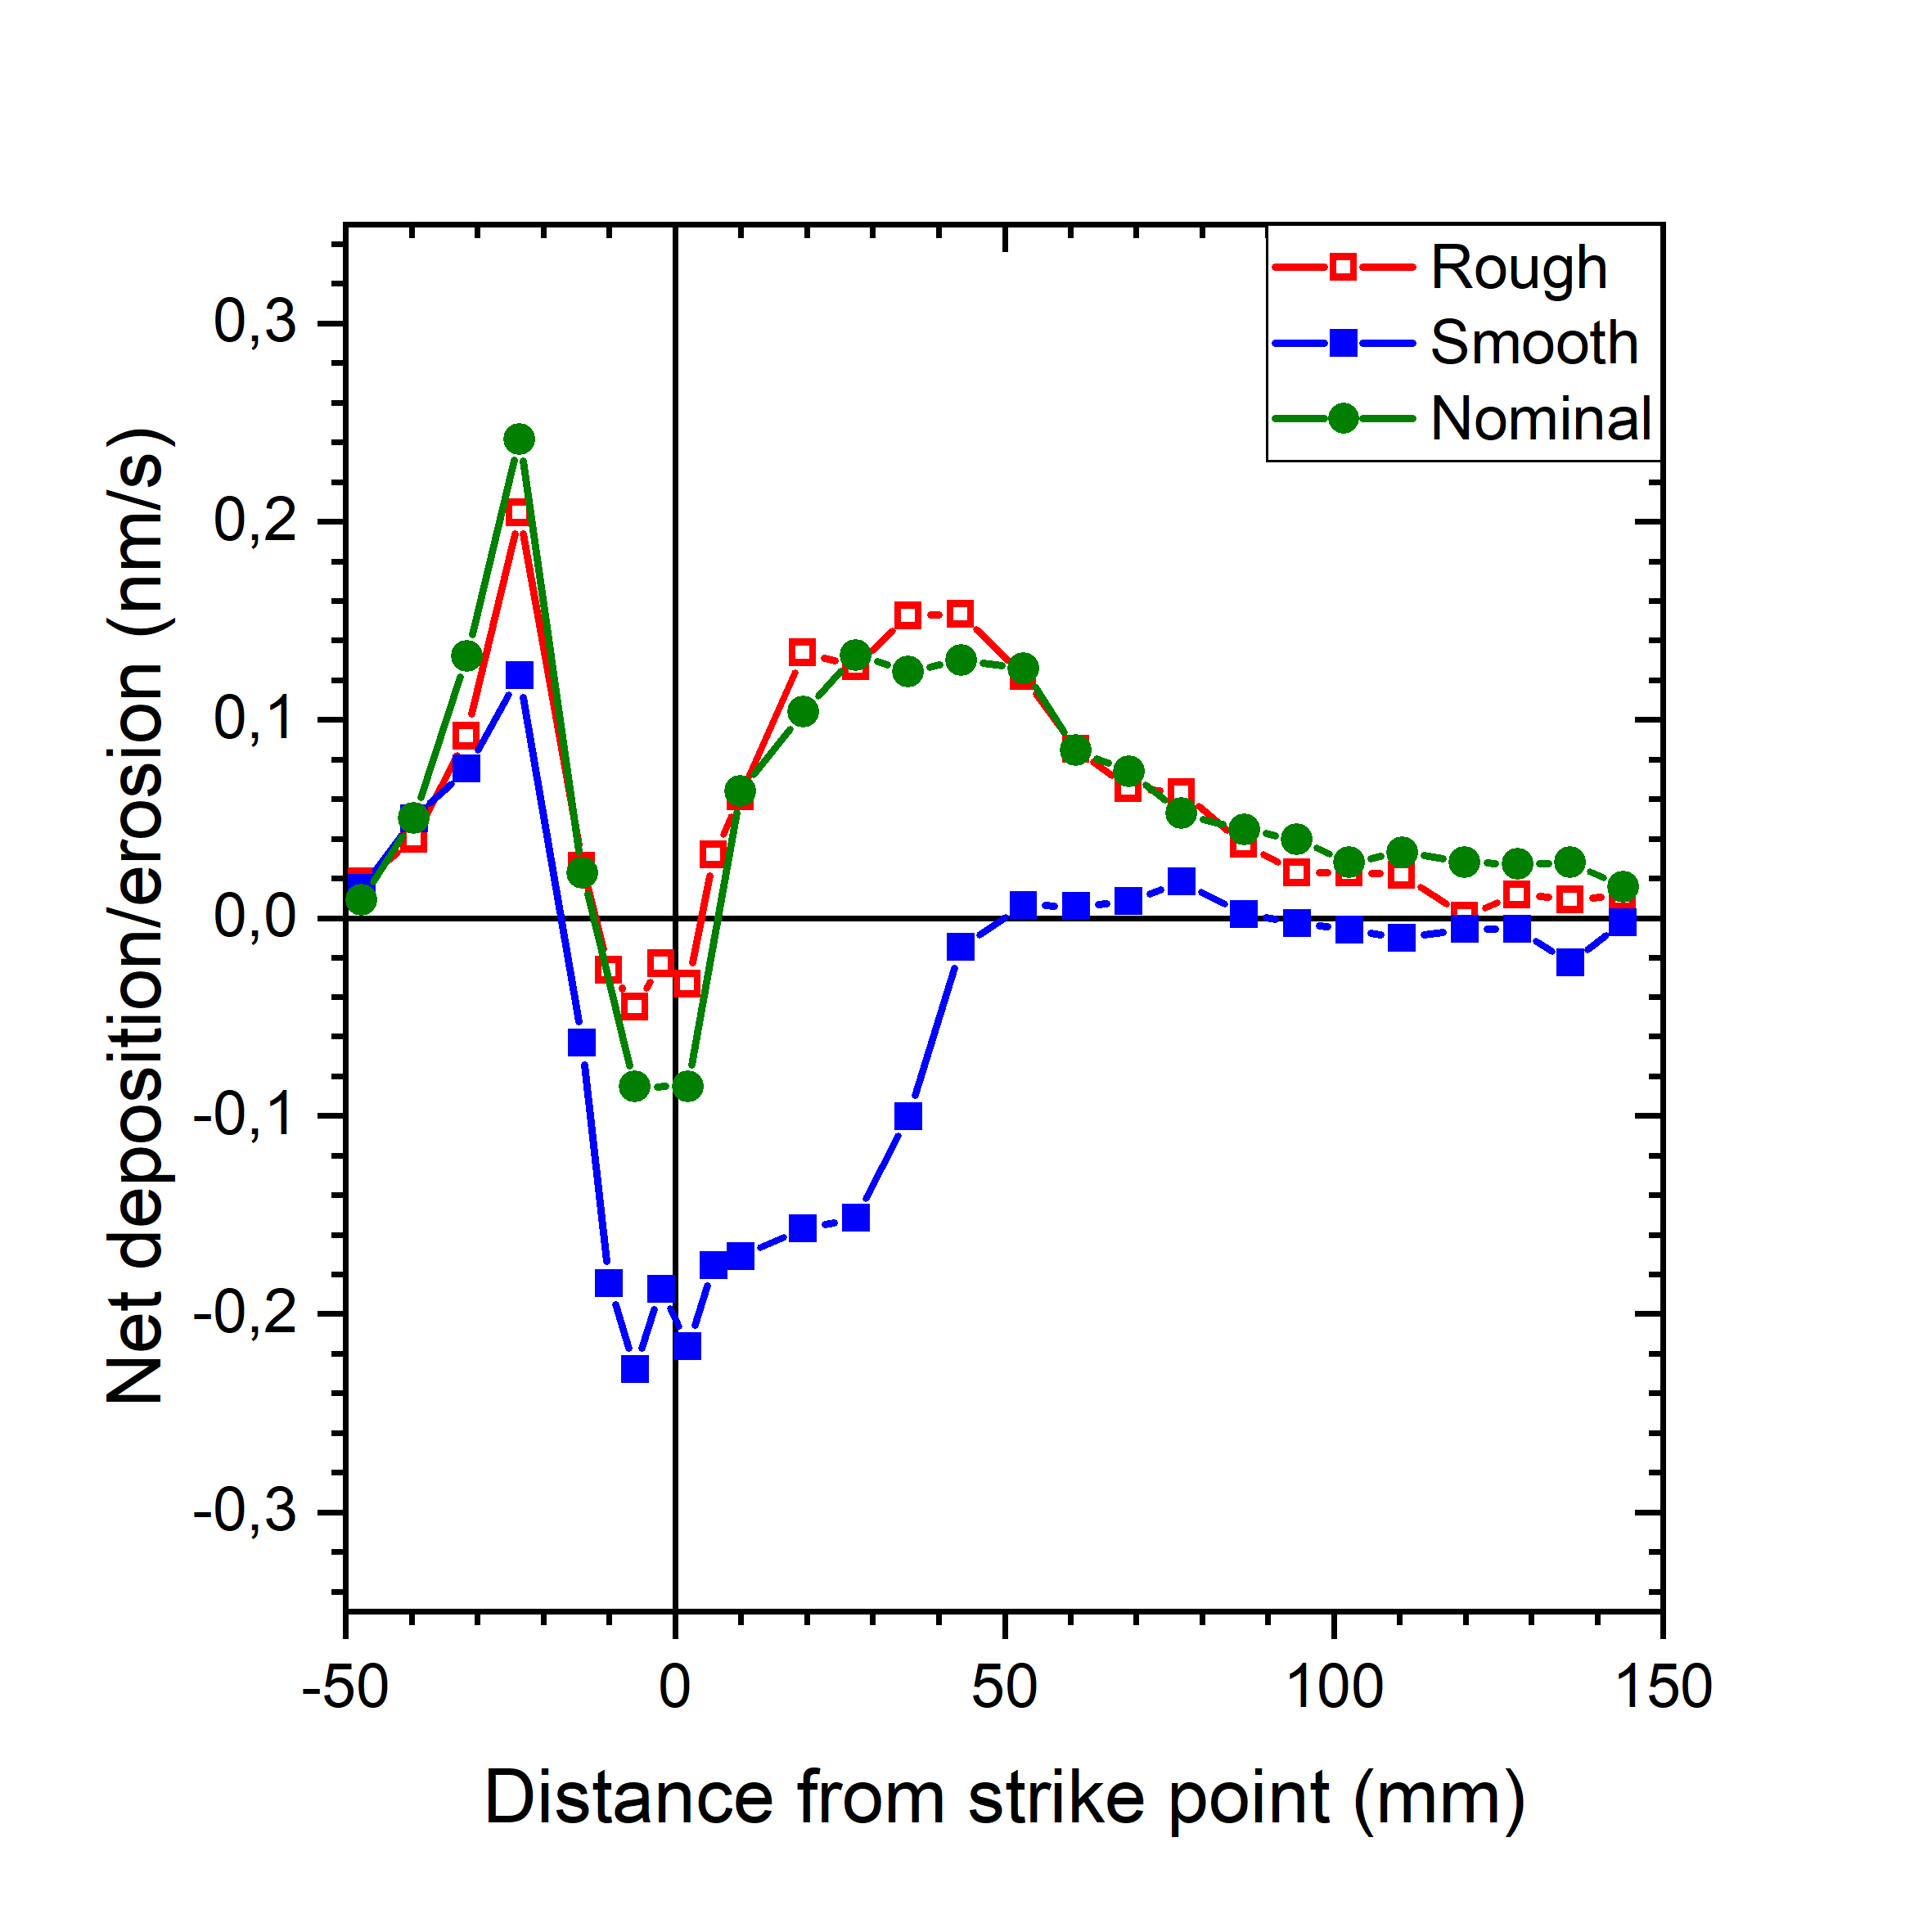 Influence of surface roughness on net erosion/deposition of W.